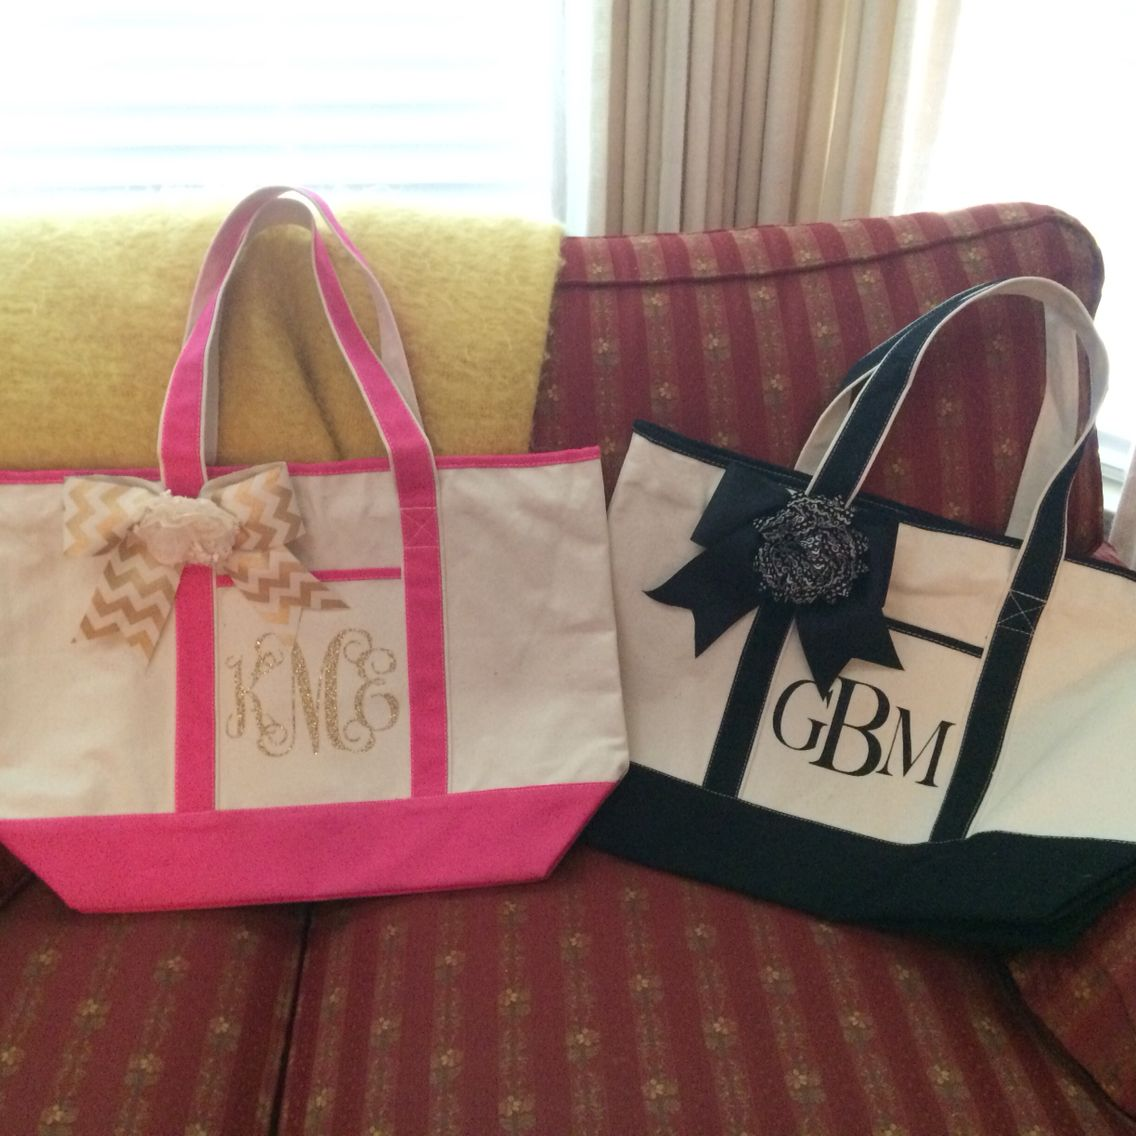 Vinyl Heat Transfer Monogrammed Spa Tote Bags Made With